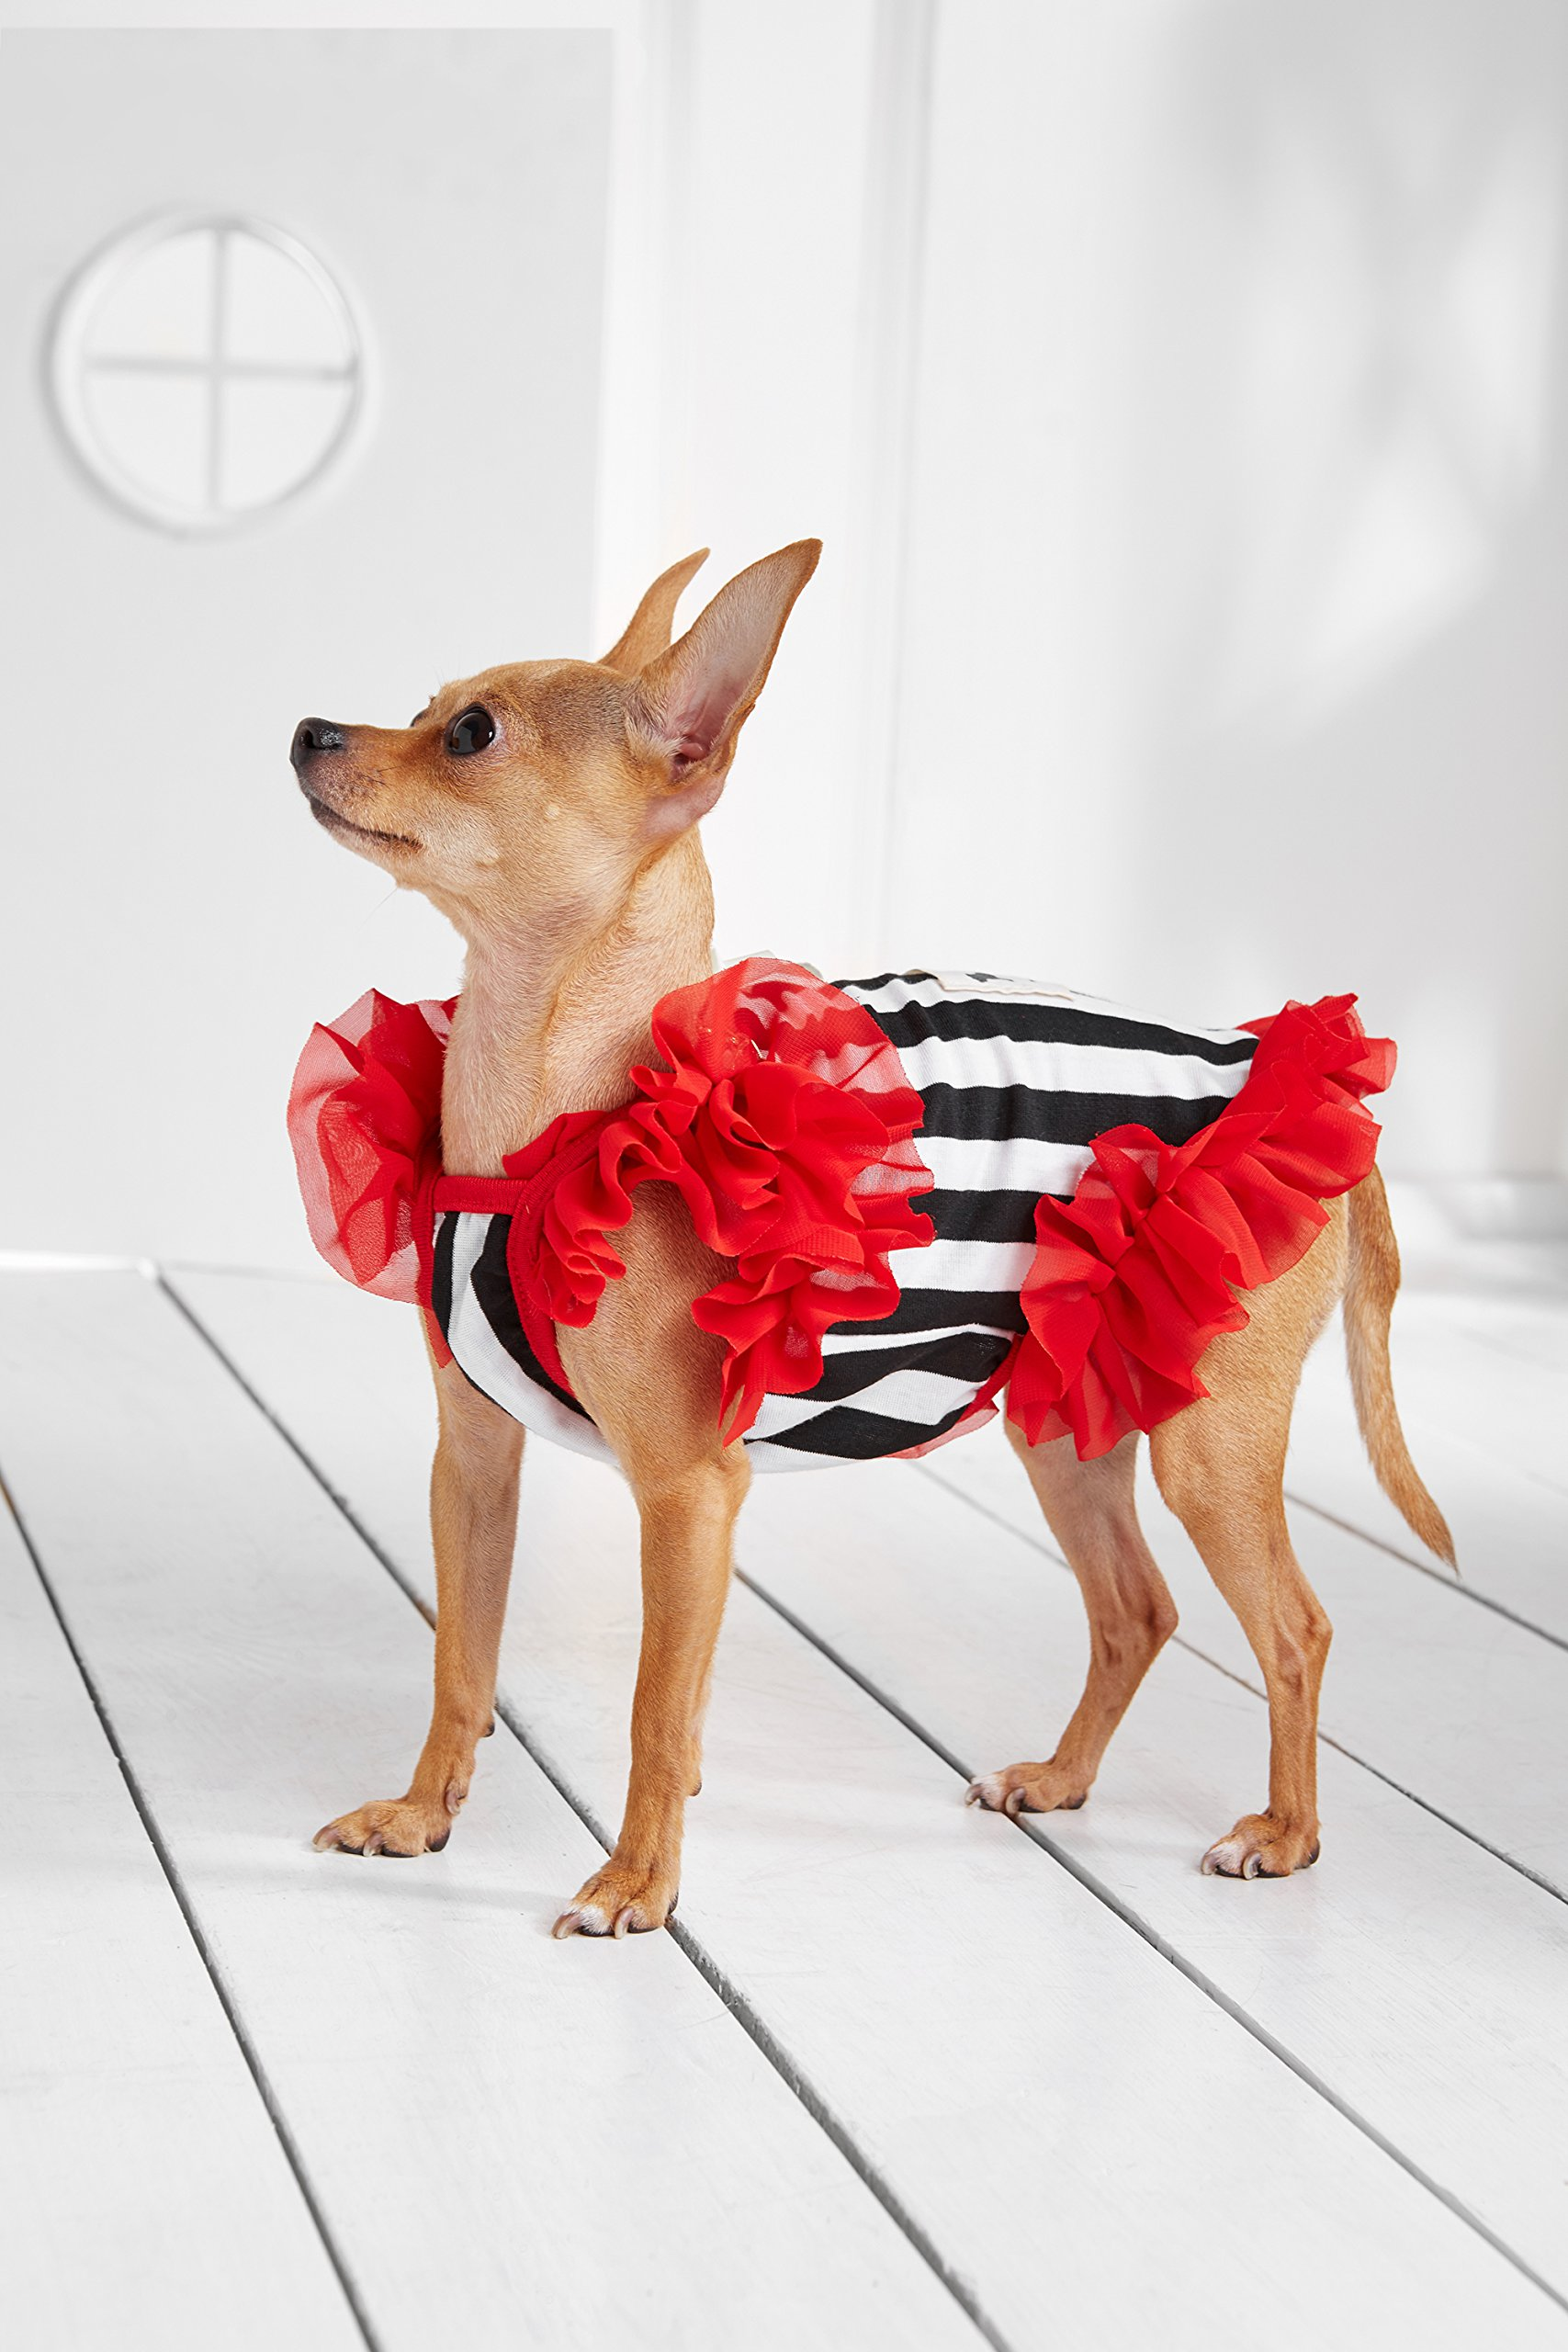 """Small Dog Striped Dress With Ruffles Satin Bow Chain Dogs Cotton Summer Clothes (Toy Plus: 10"""" / 5-9 lbs, Red, Black, White) by Nothing But Love Pets (Image #6)"""